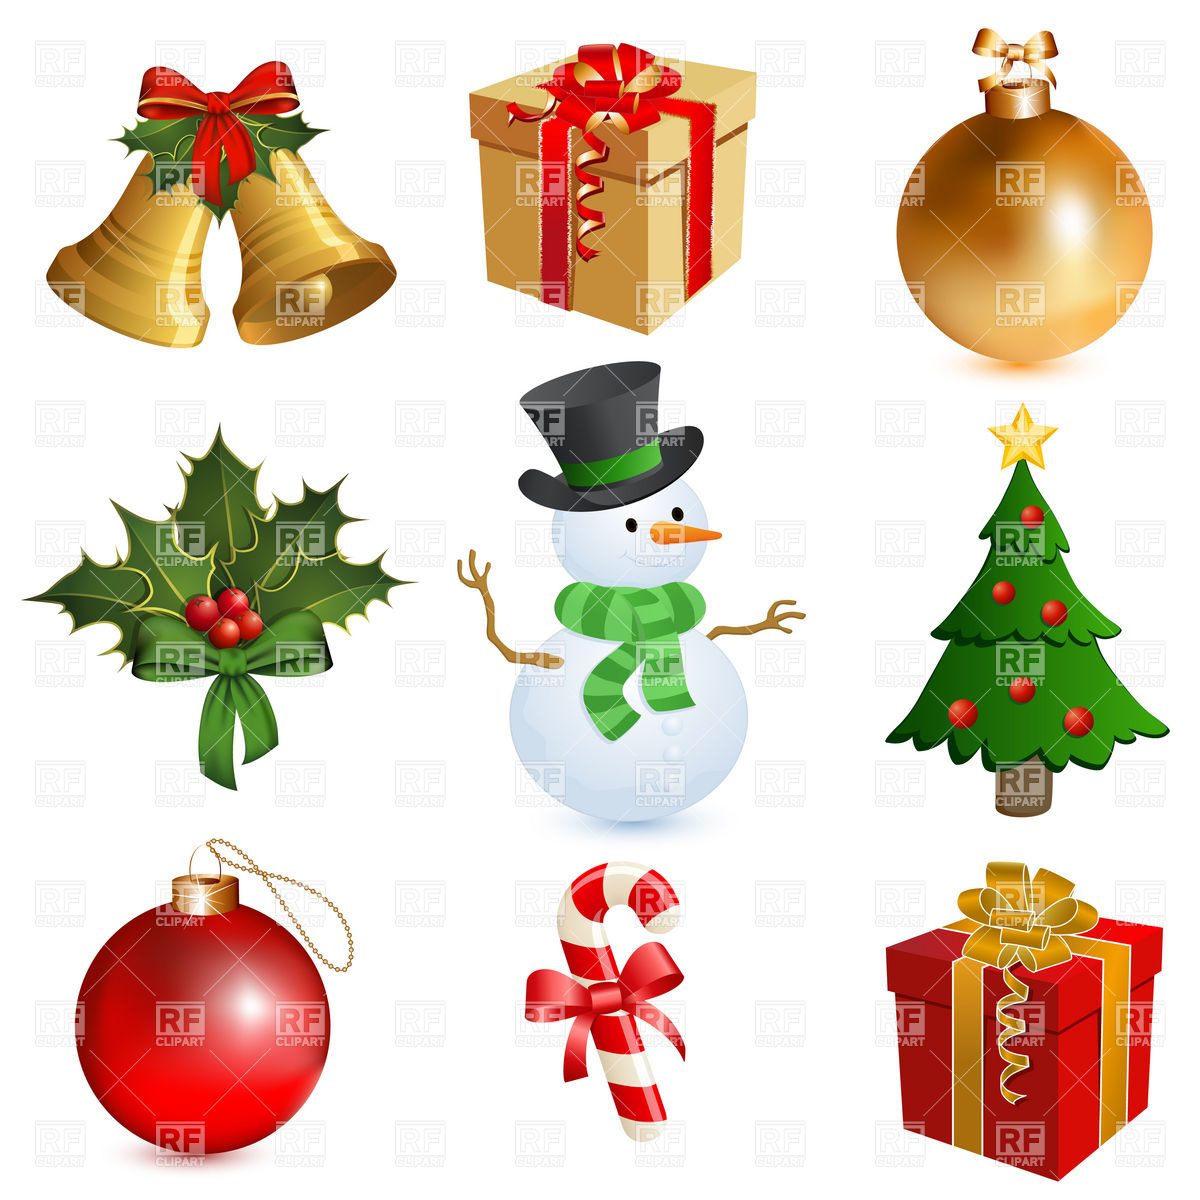 clipart christmas party clipart panda clipart images clipart%20christmas%20party